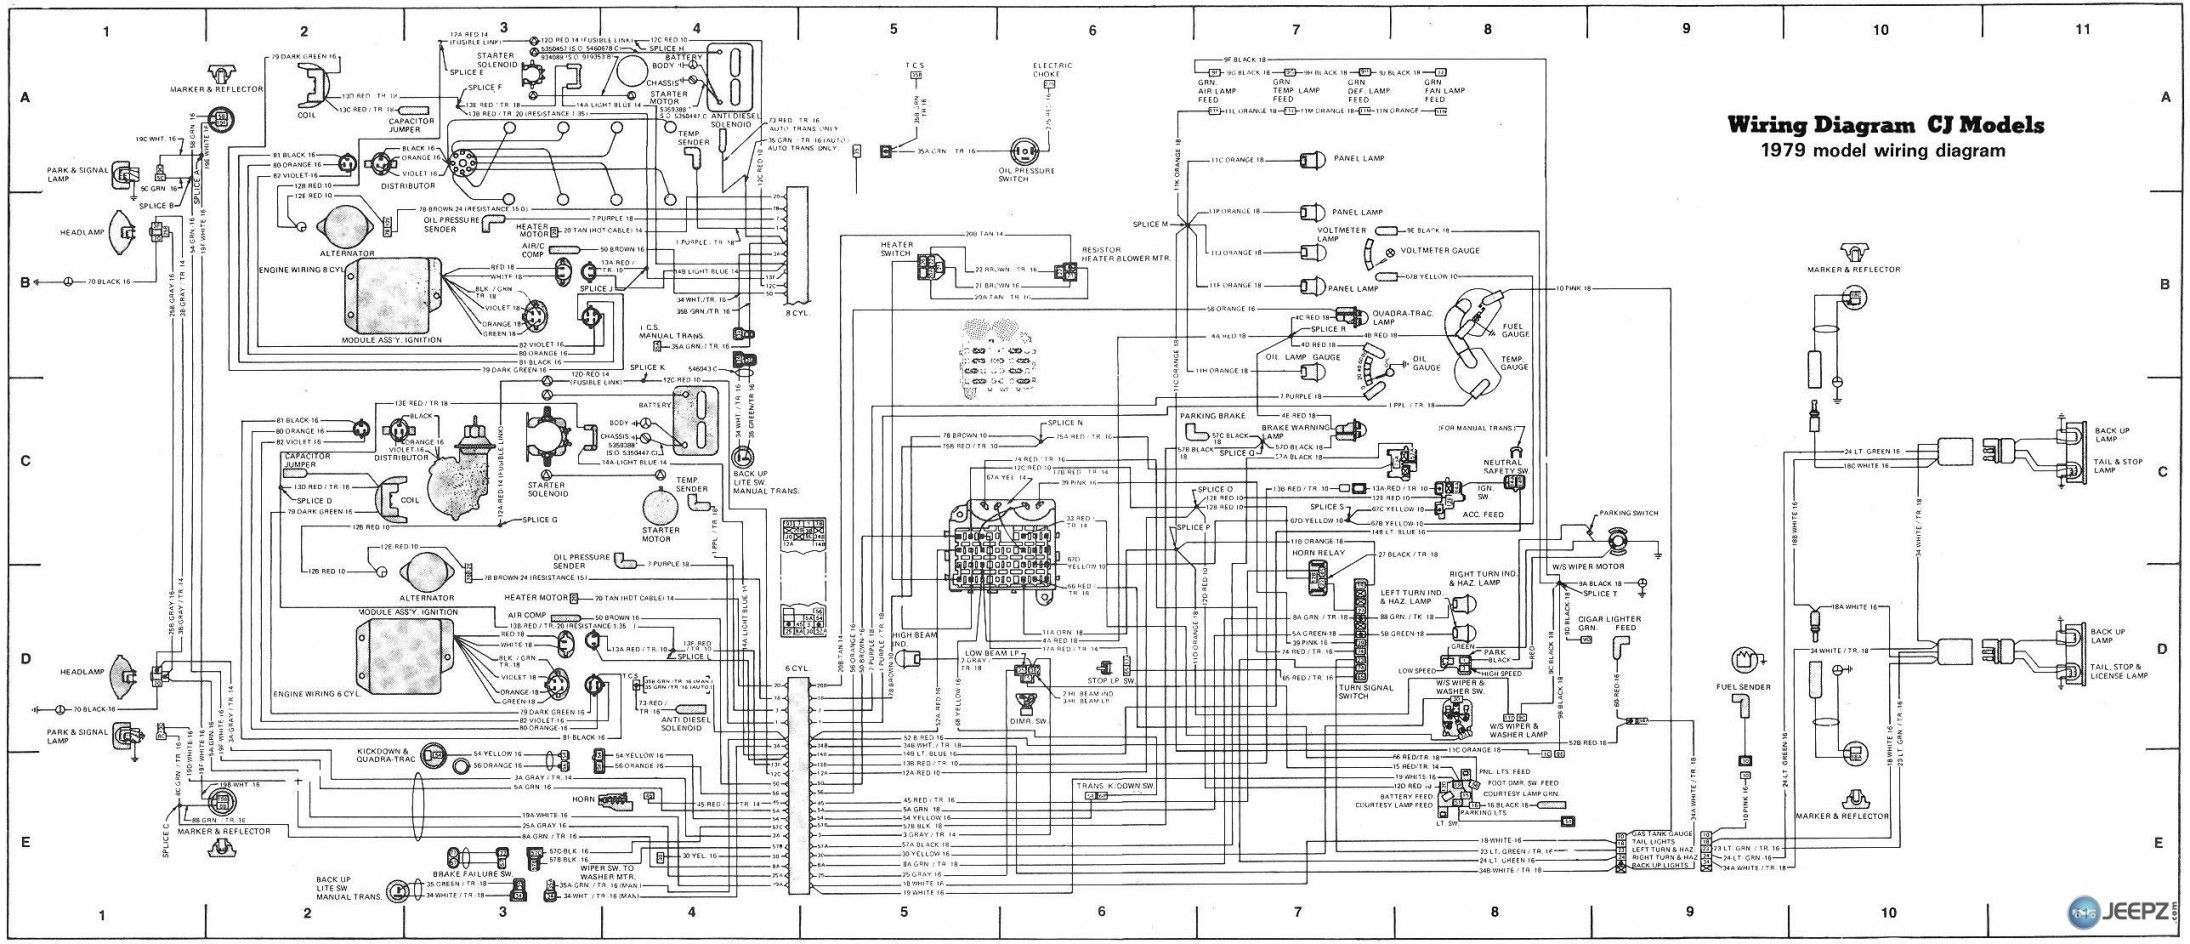 hight resolution of wiring diagram for jeep cj7 auto diagram database 1983 jeep cj7 gauge cluster wiring diagram